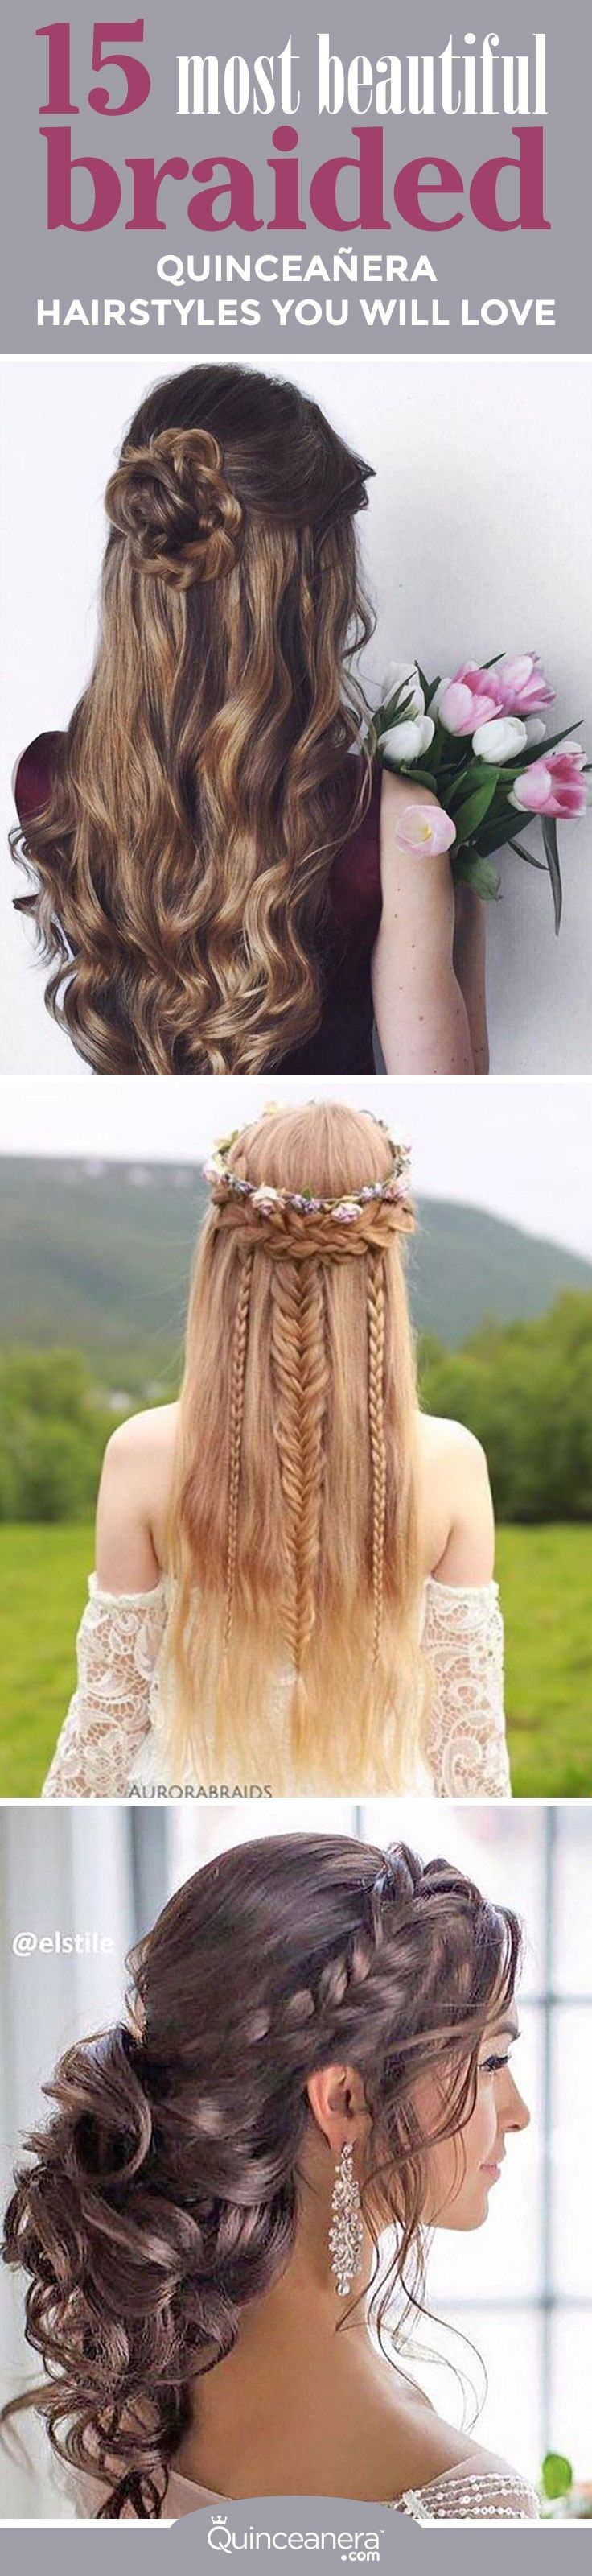 Hairstyles For A Quinceanera Best 25 Quinceanera Hairstyles Ideas On Pinterest Quince